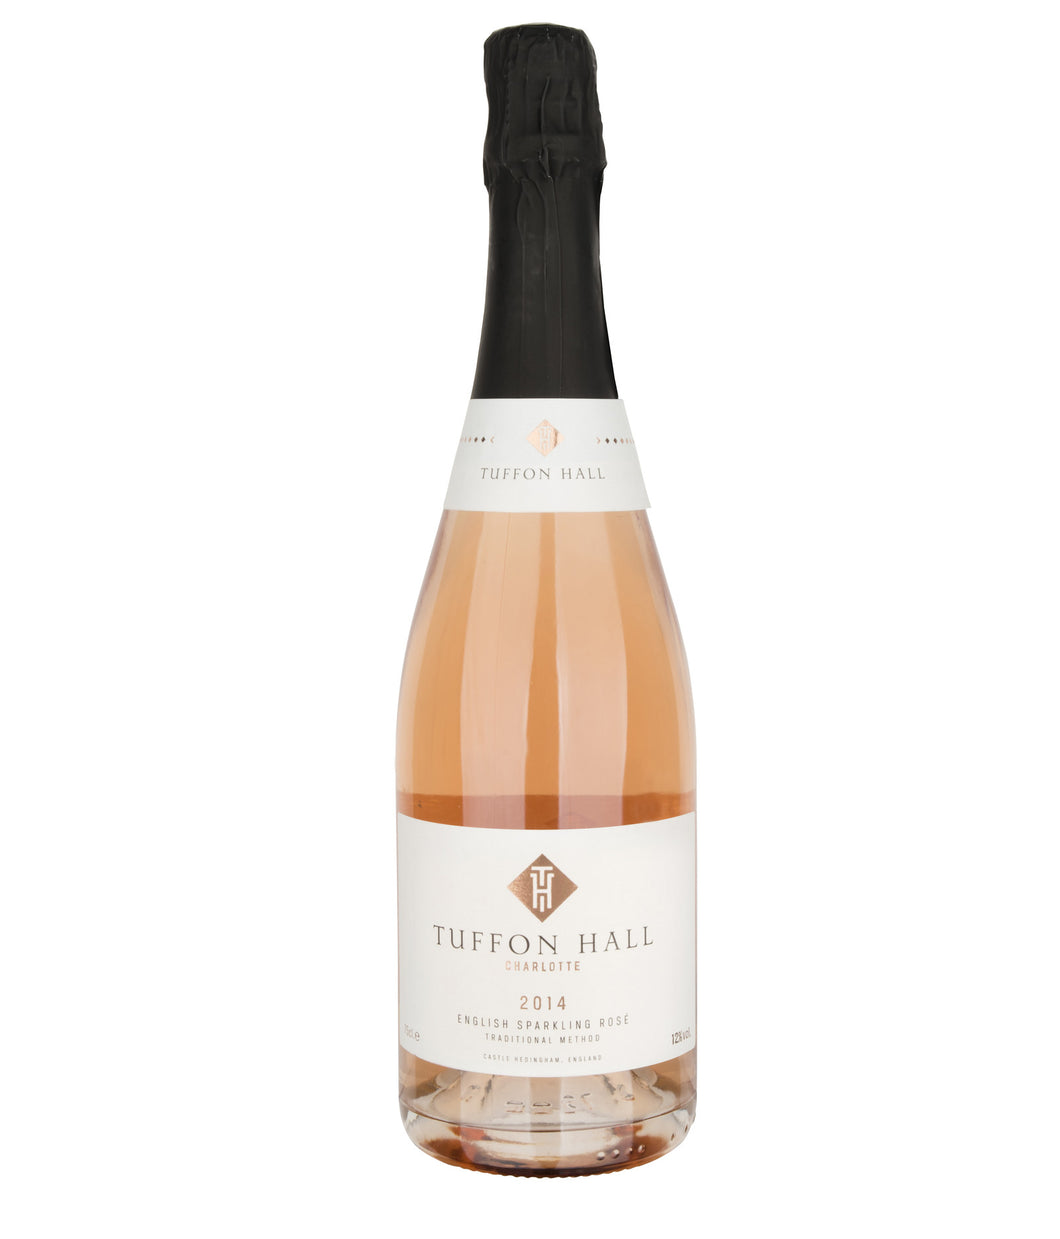 Tuffon Hall English Sparkling Rosé 2014 - sipp